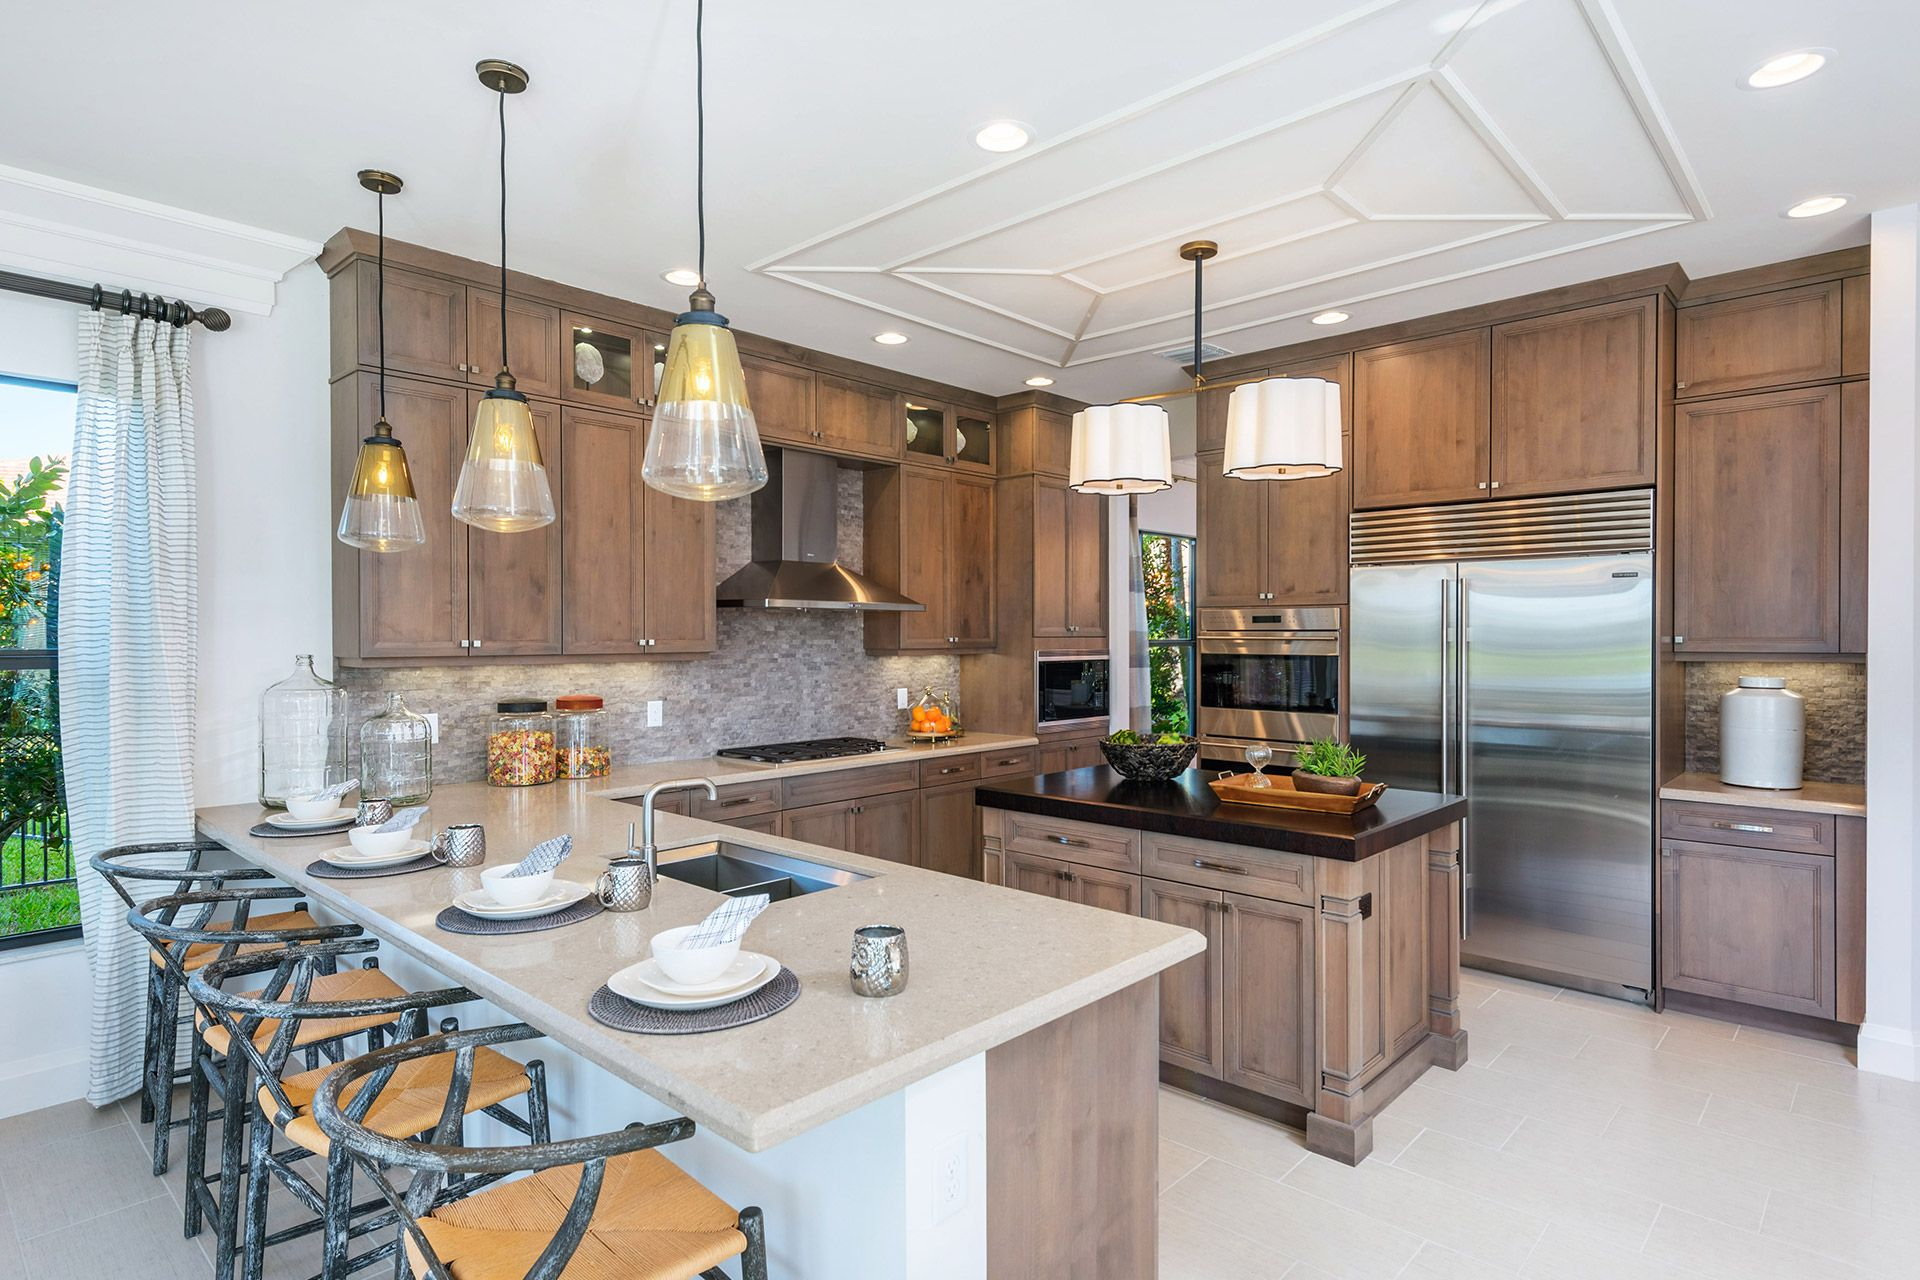 Kitchen featured in the Bassano Grande Contemporary By GL Homes in Palm Beach County, FL